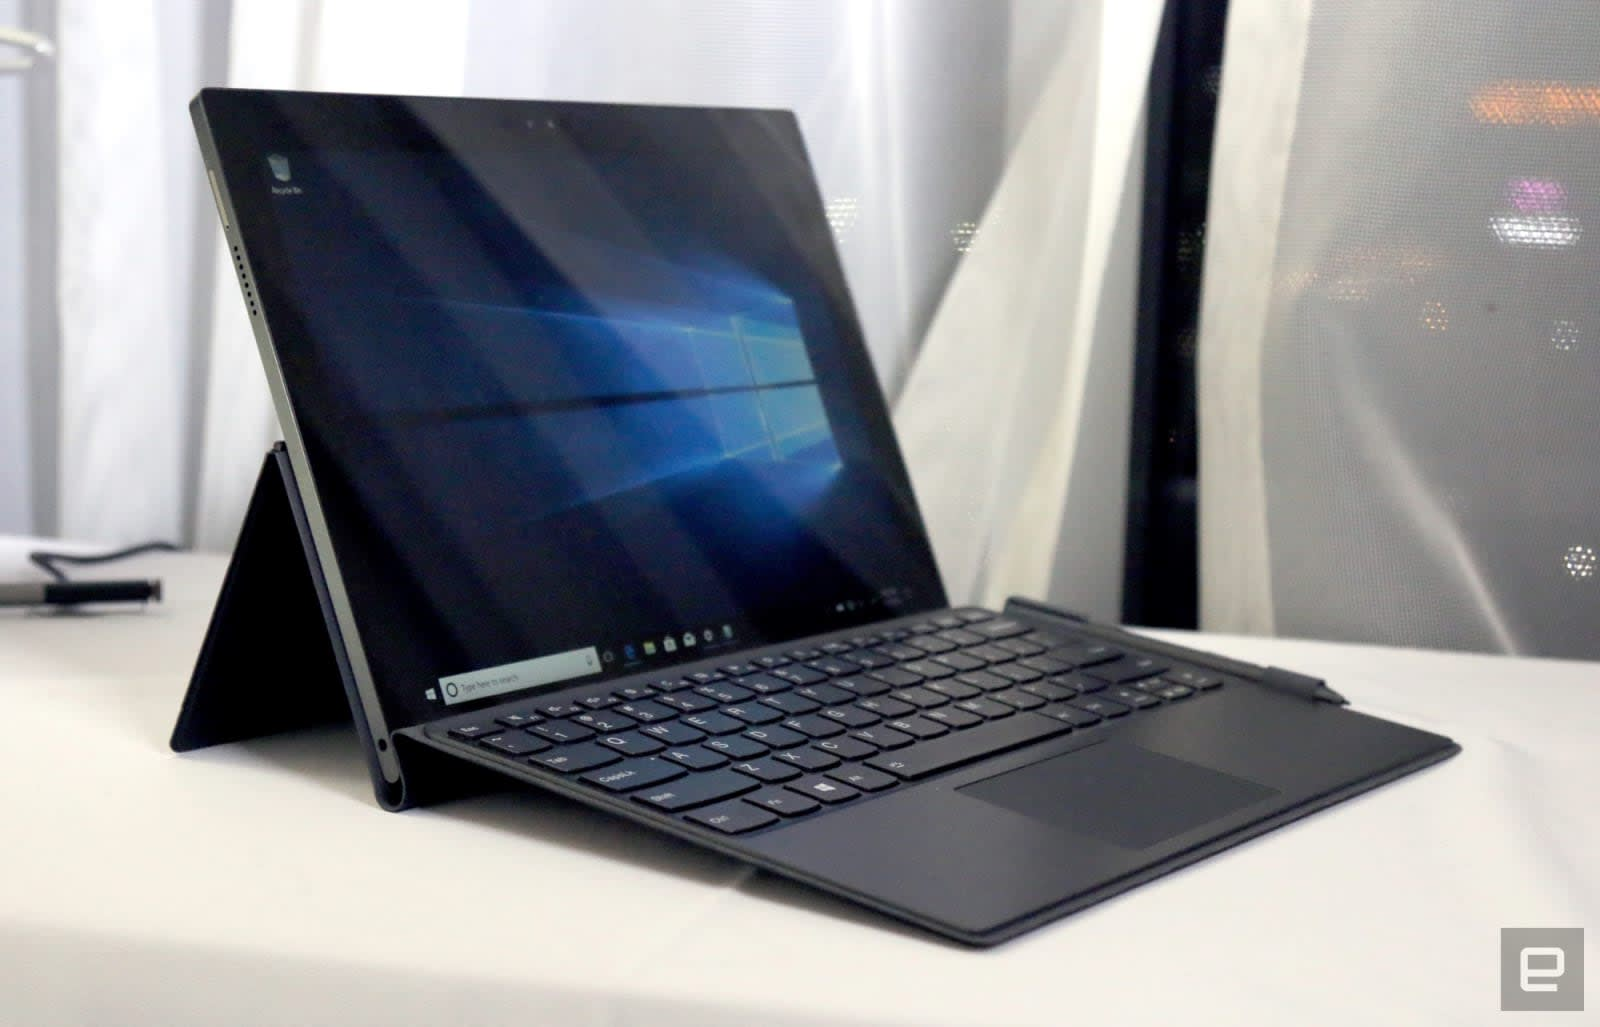 Lenovo Miix 630 hands-on: A solid keyboard and Snapdragon power